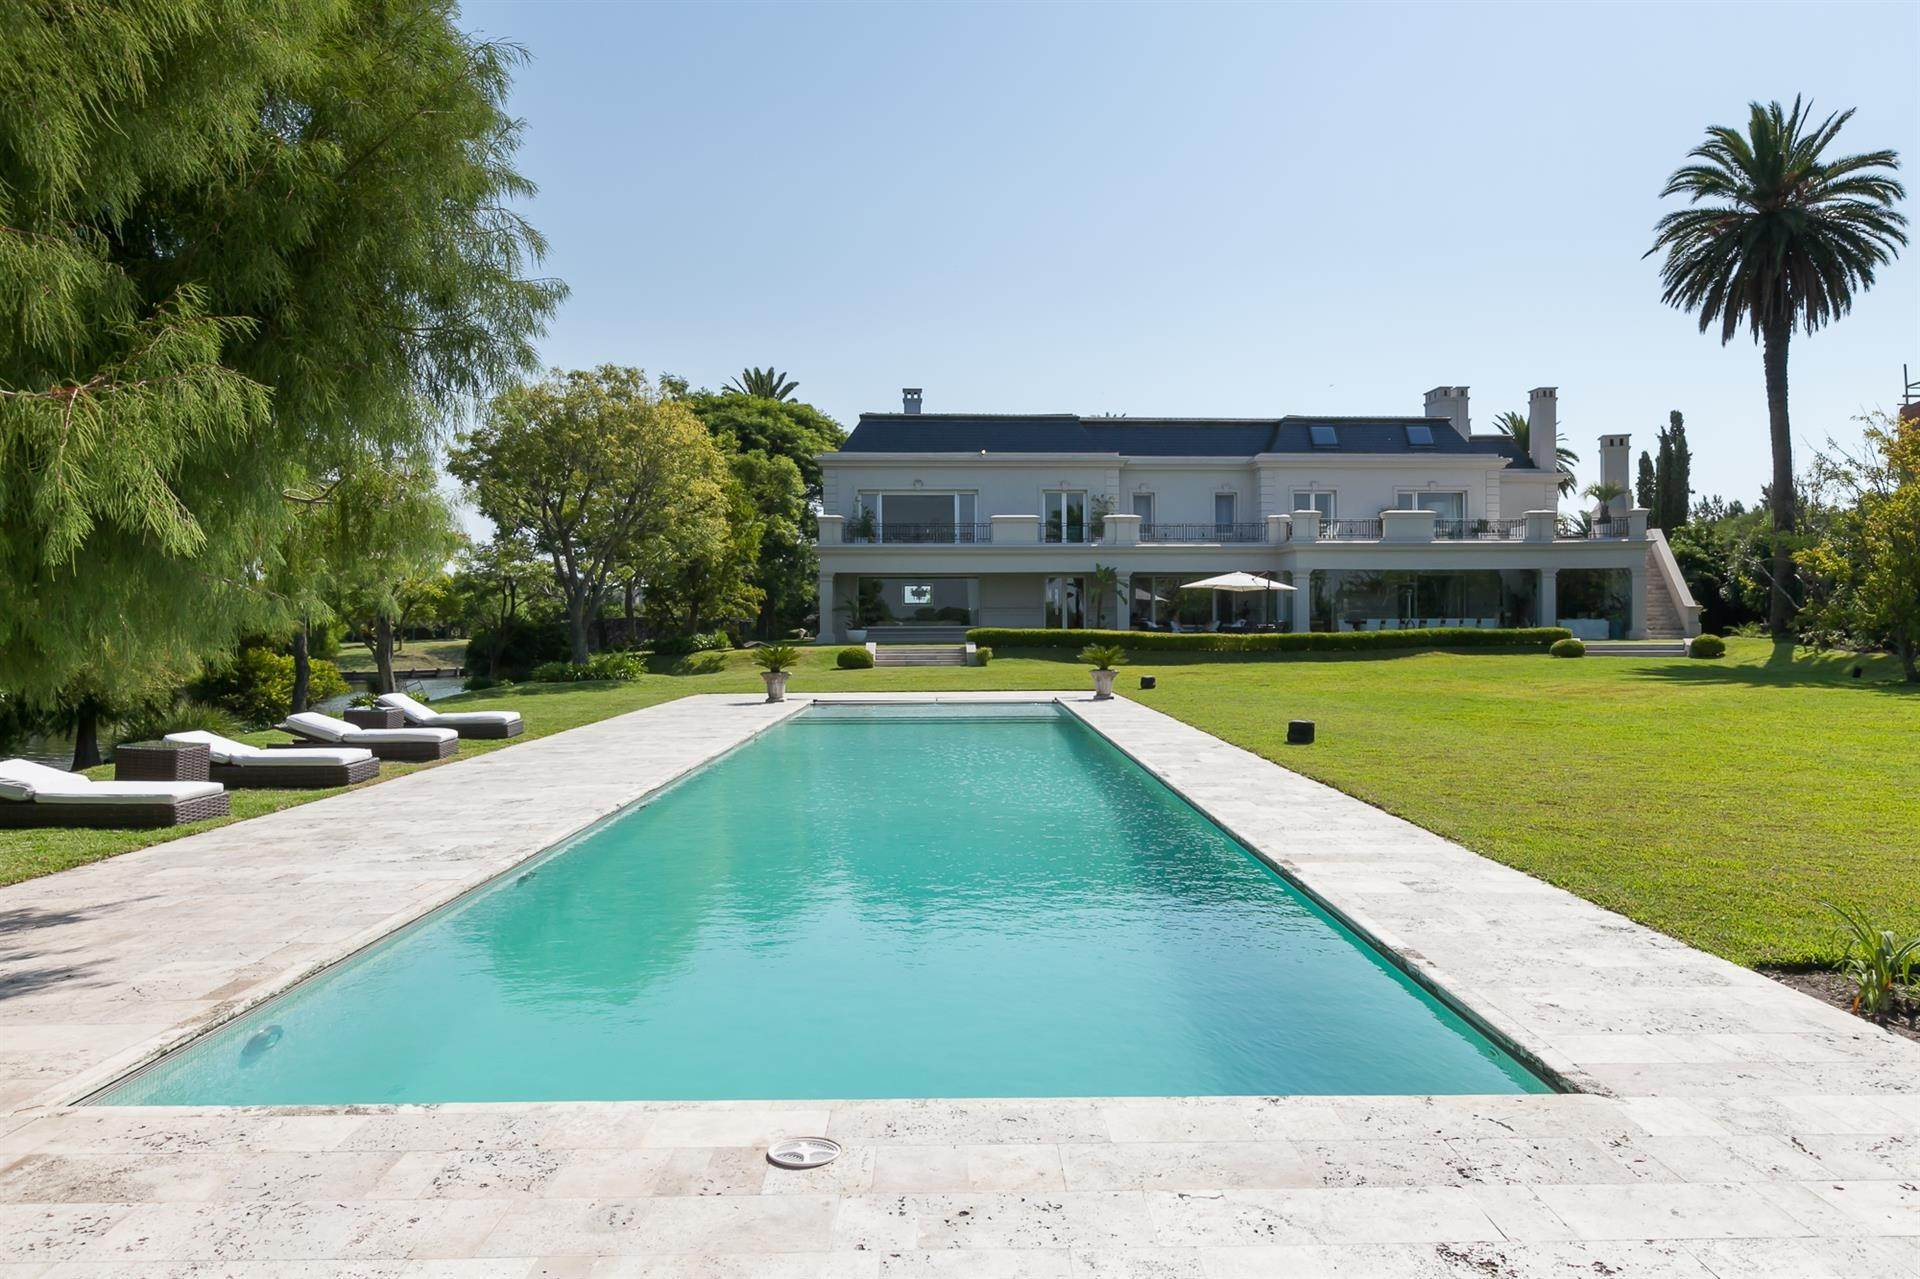 36. Single Family Home for Sale at Incredible house in La Isla, Nordelta Tigre, Argentina